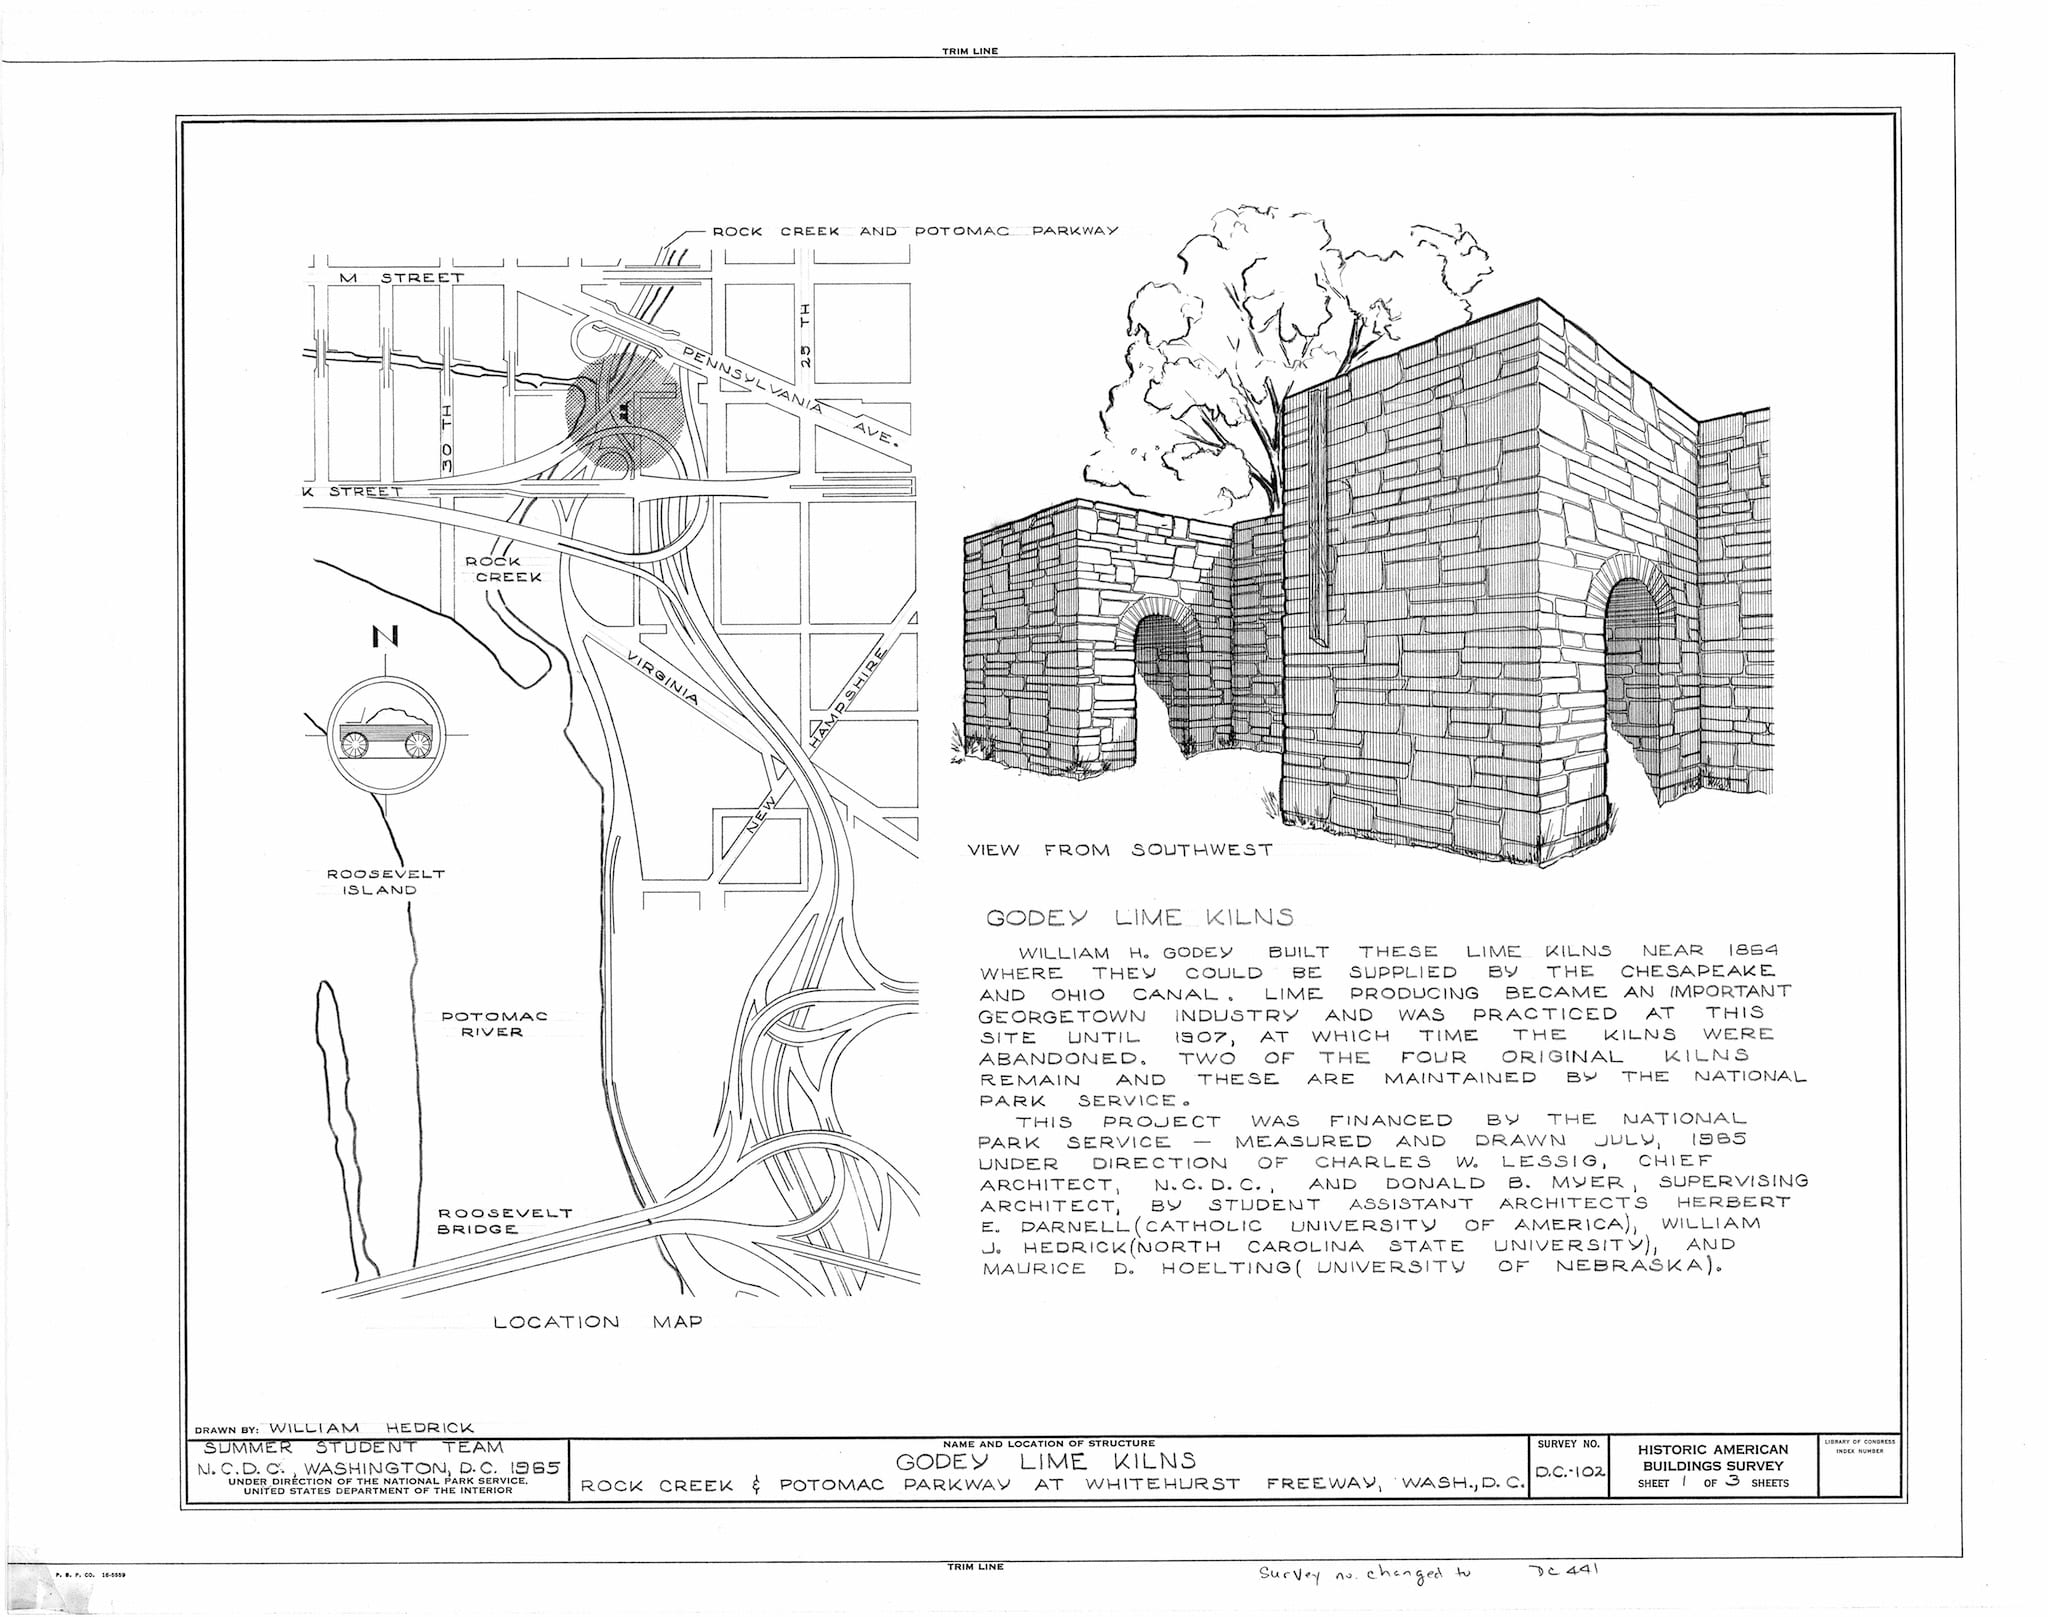 HABS DC,WASH,168- (sheet 1 of 3) - Godey Lime Kilns (Ruins), Junction of Rock Creek & Potomac Parkway, Washington, District of Columbia, DC